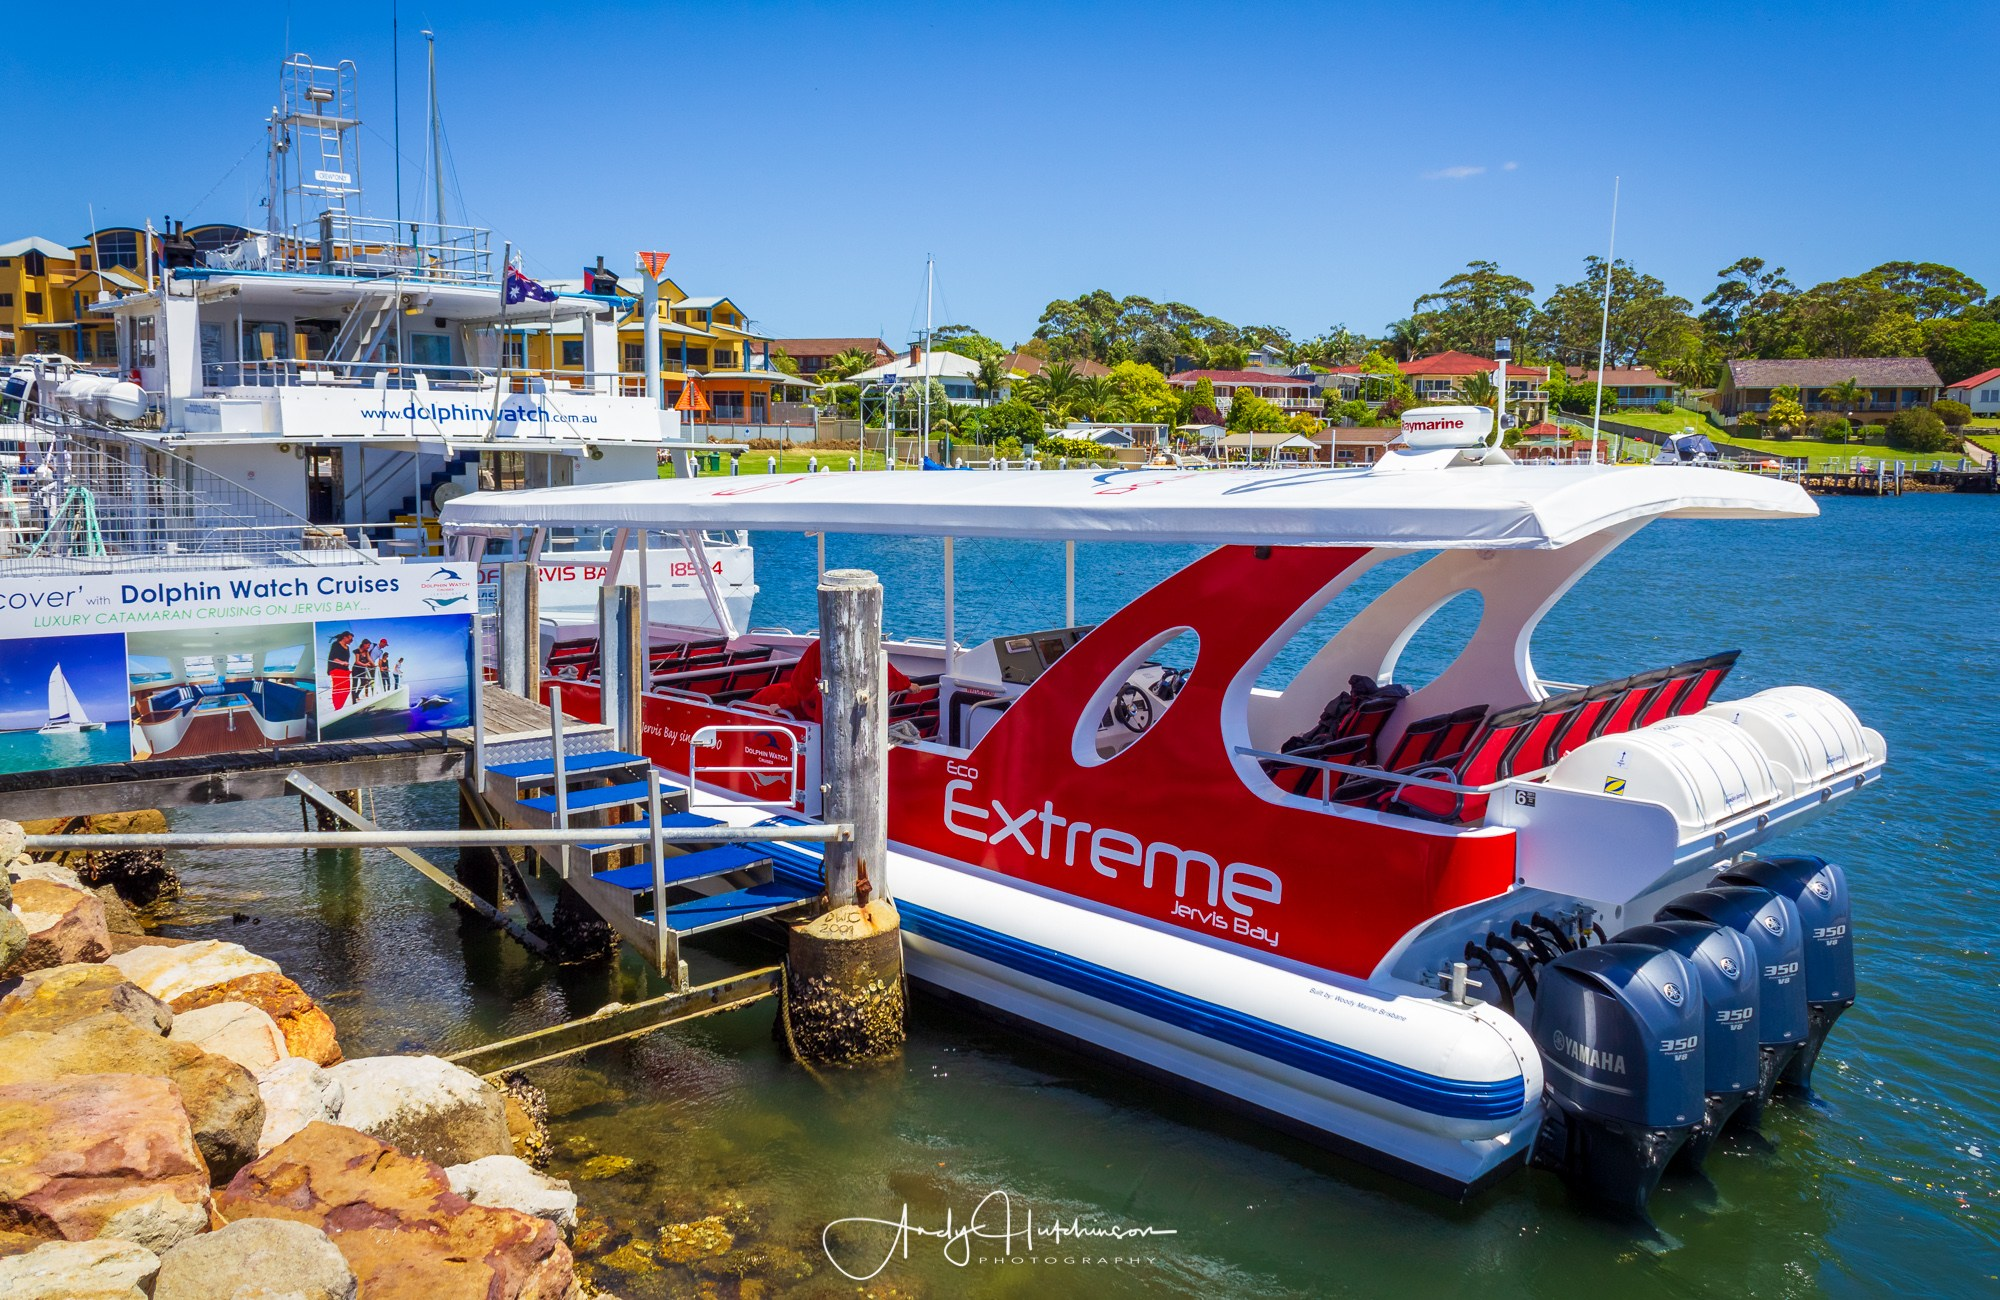 Dolphin Watch Cruises Eco Extreme cruise boat at the public wharf in Huskisson